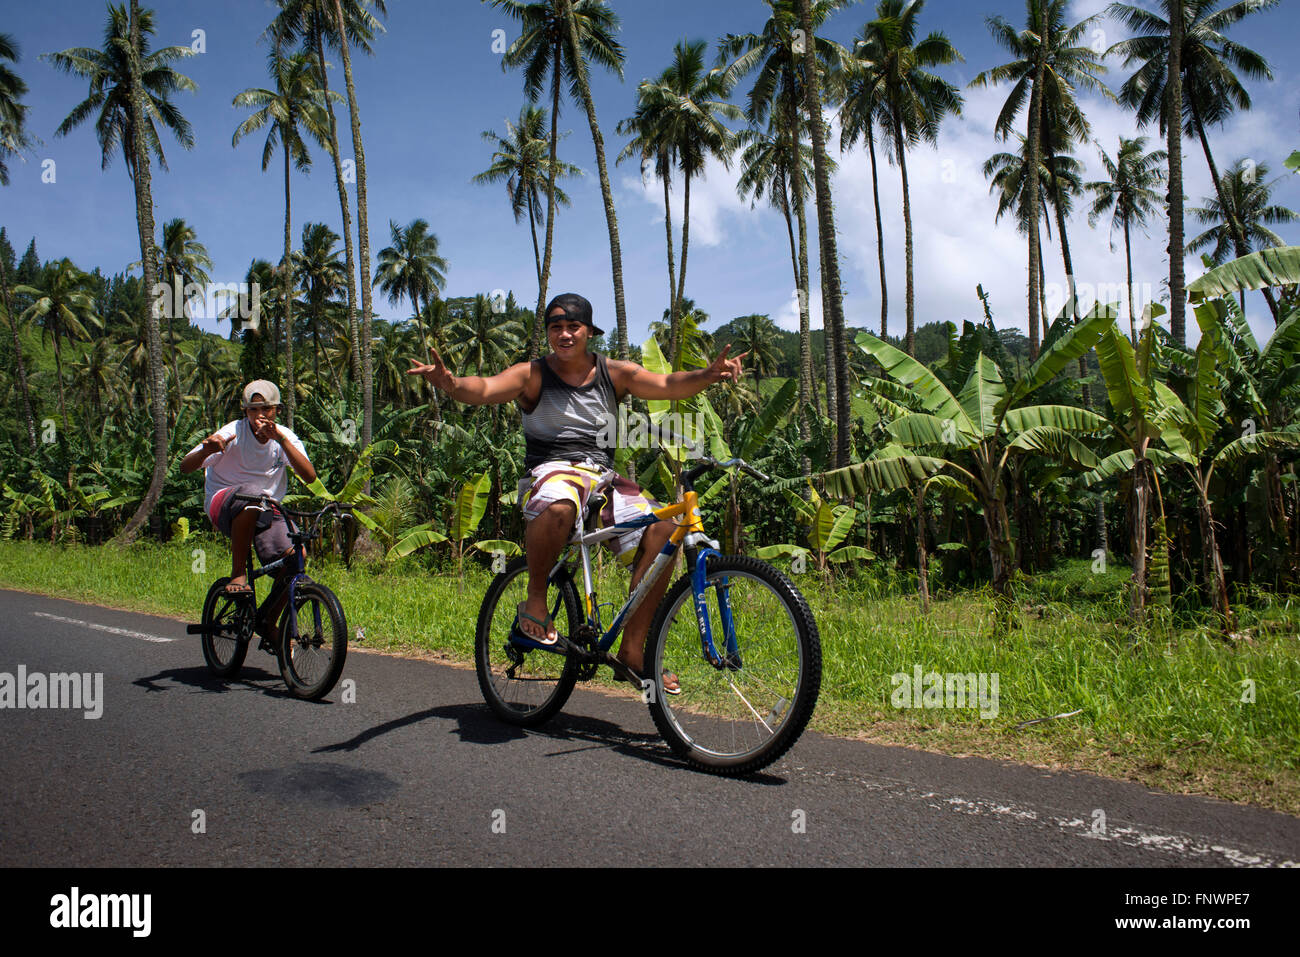 Palm trees and teen boys cyclists at Route de ceinture, Tahiti Nui, Society Islands, French Polynesia, South Pacific. - Stock Image